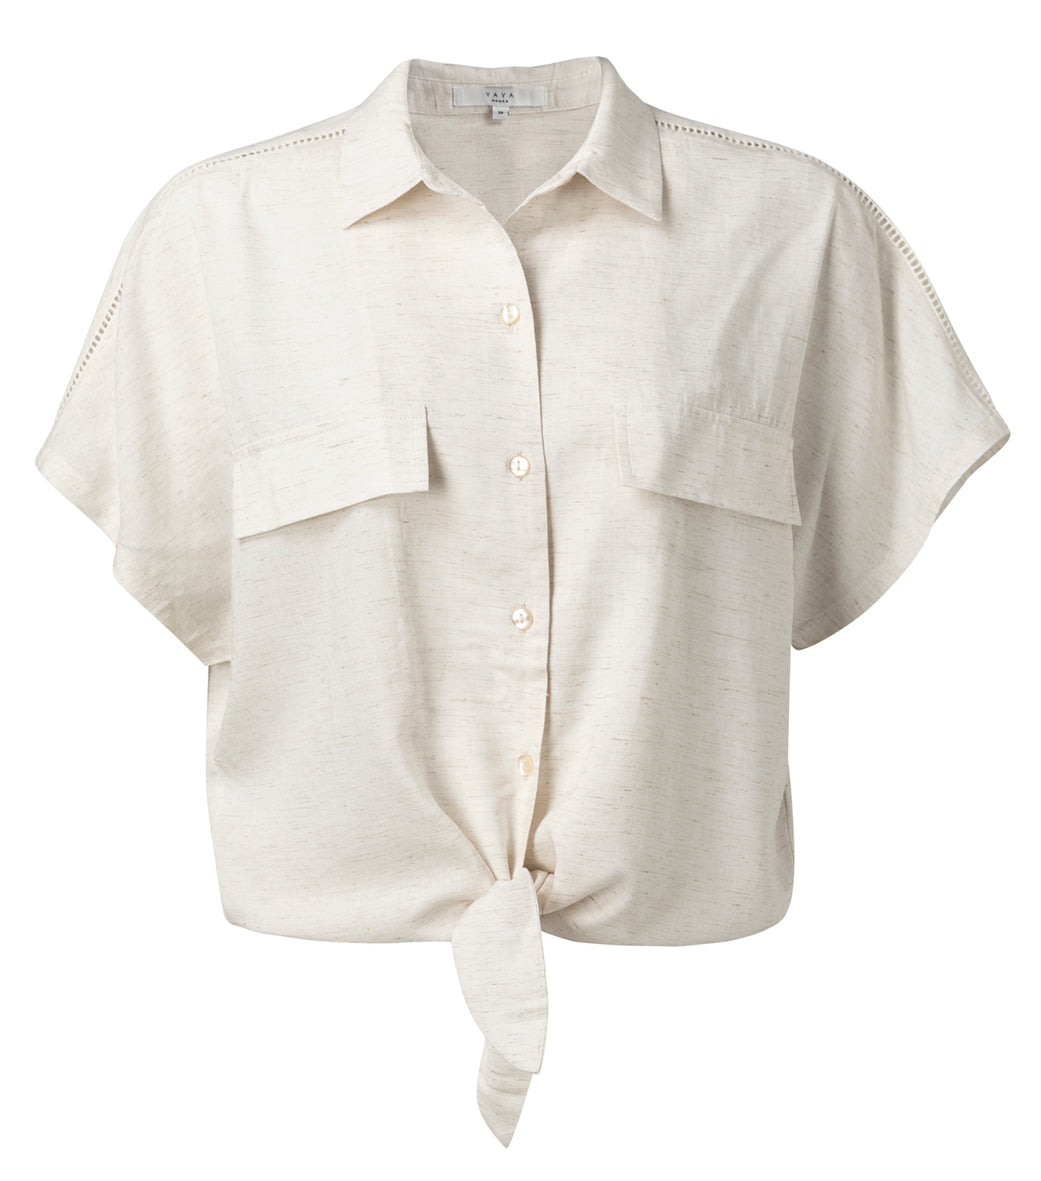 YAYA Knotted shirt with short sleeves, white sand